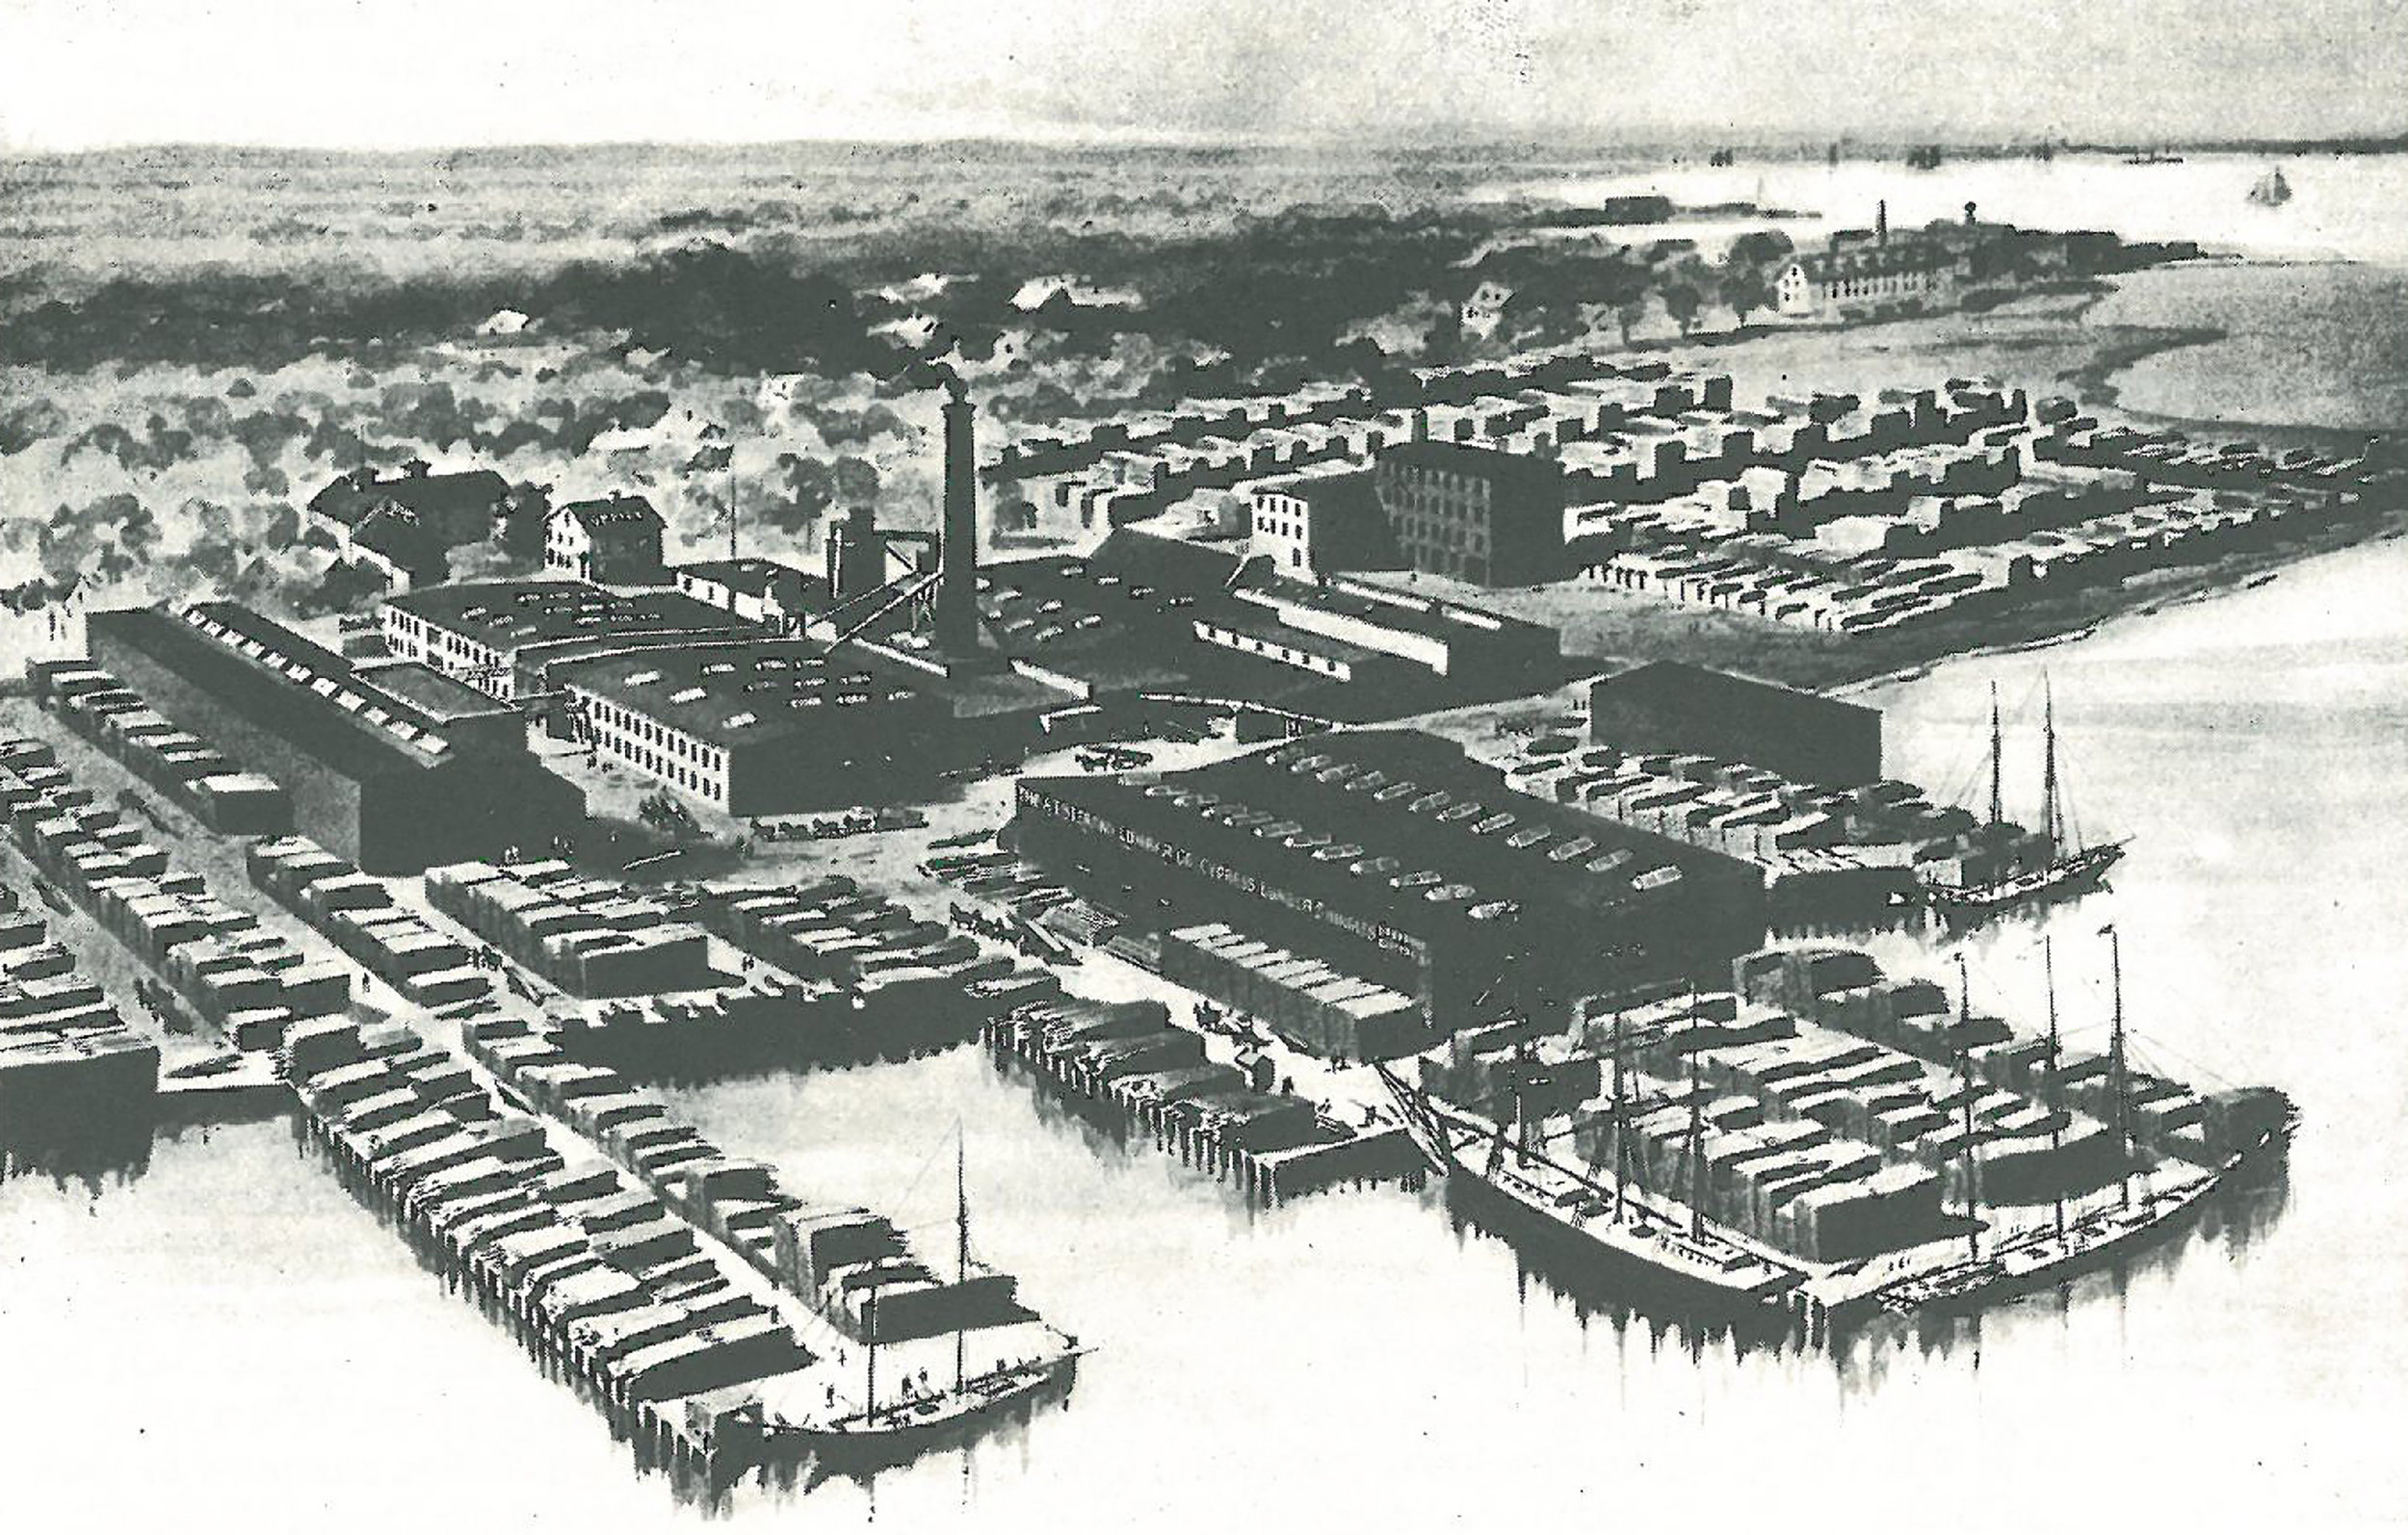 Historic photo showing A.J. Stearns Lumber Yard with Wharf, 1897